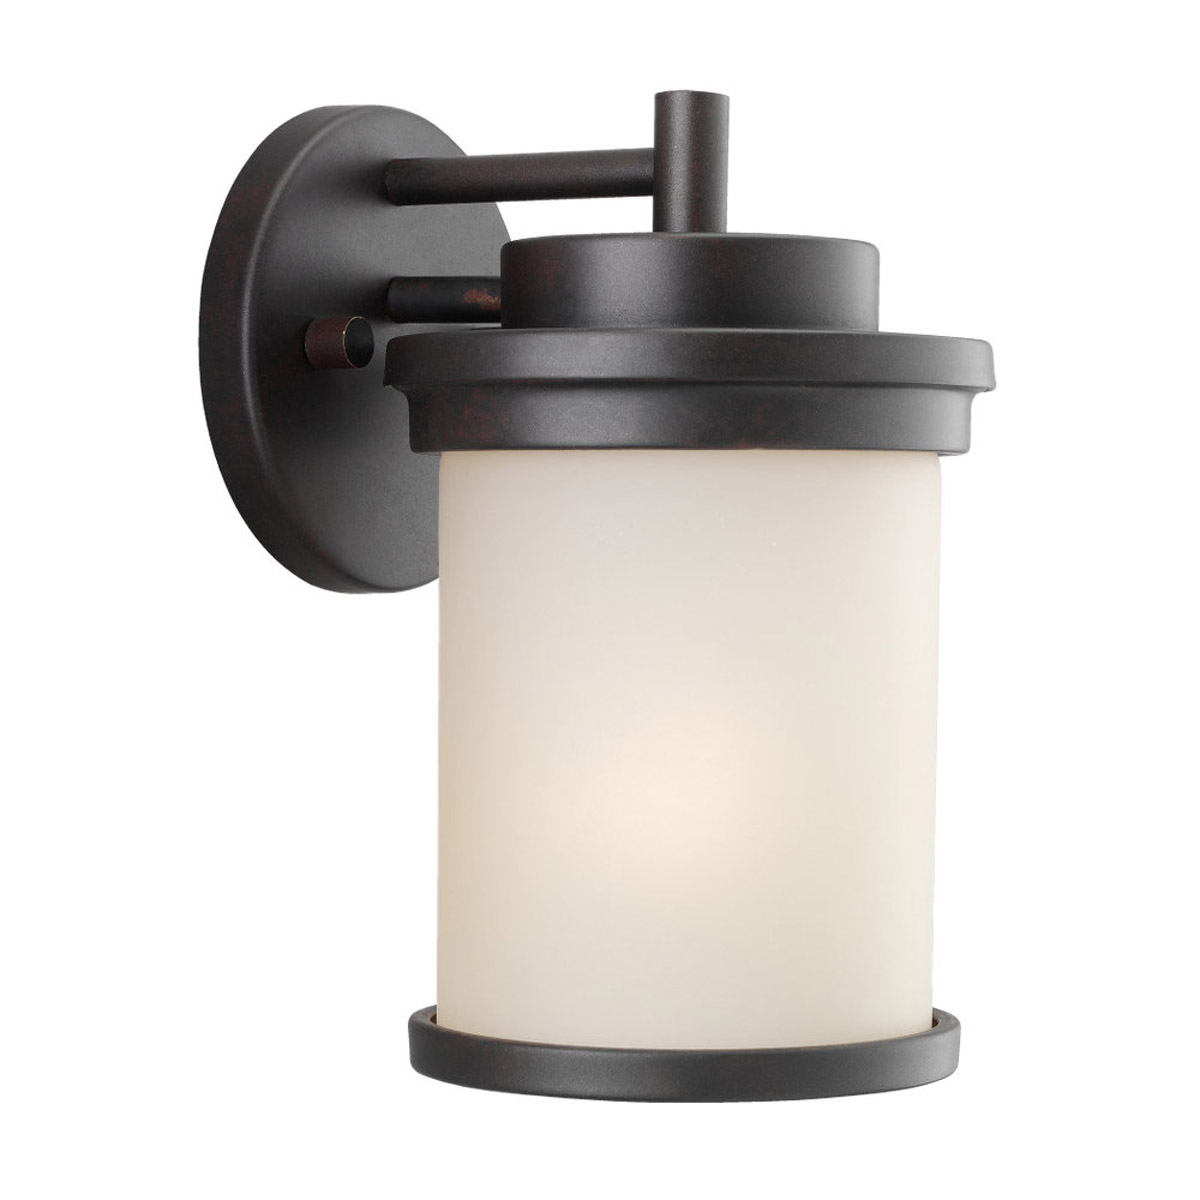 Sea Gull Lighting Winnetka 1 Light Outdoor Wall Lantern in Misted Bronze 88660-814